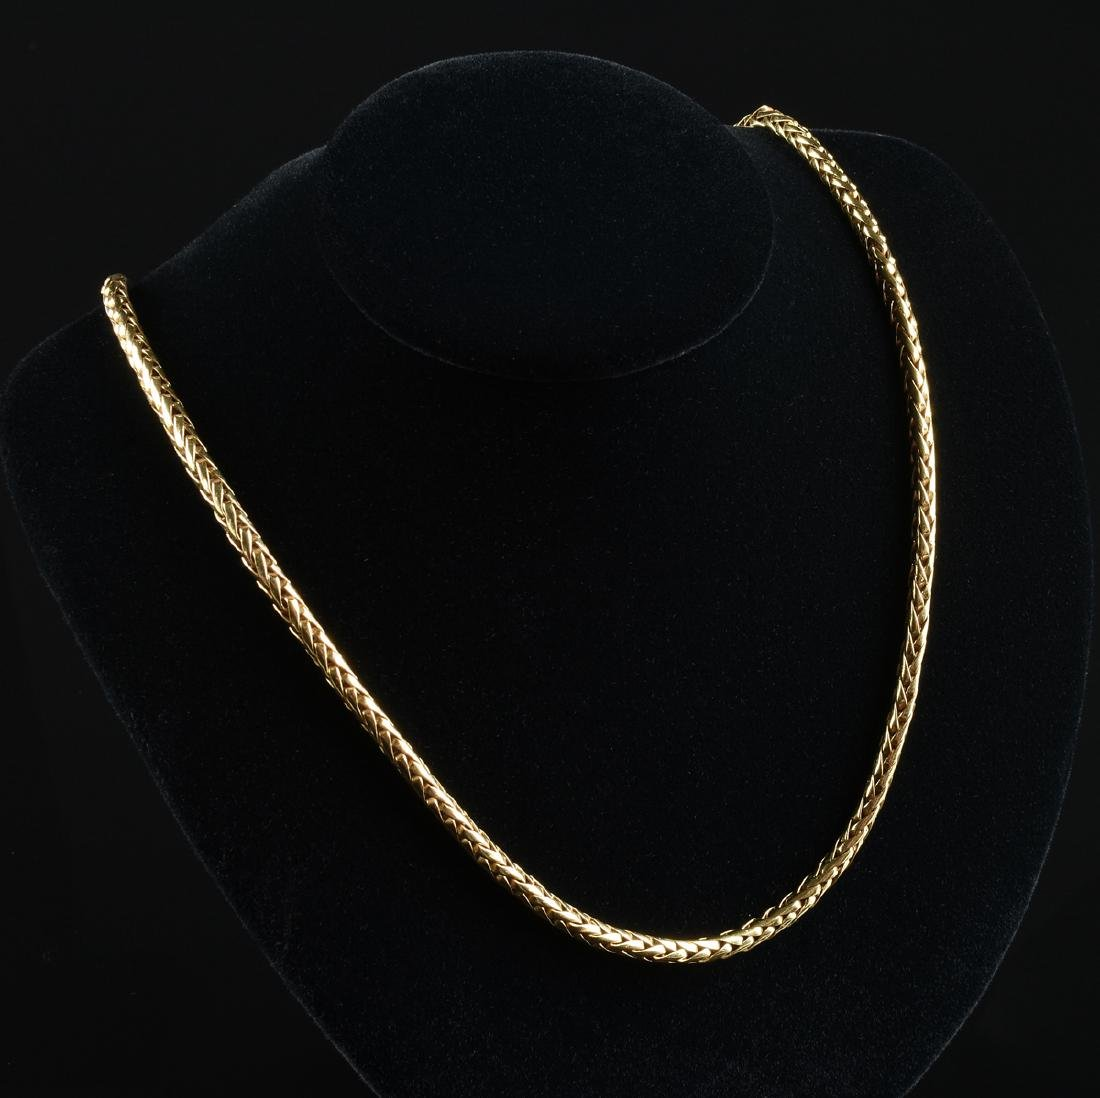 AN 18K YELLOW GOLD LADY'S NECKLACE,